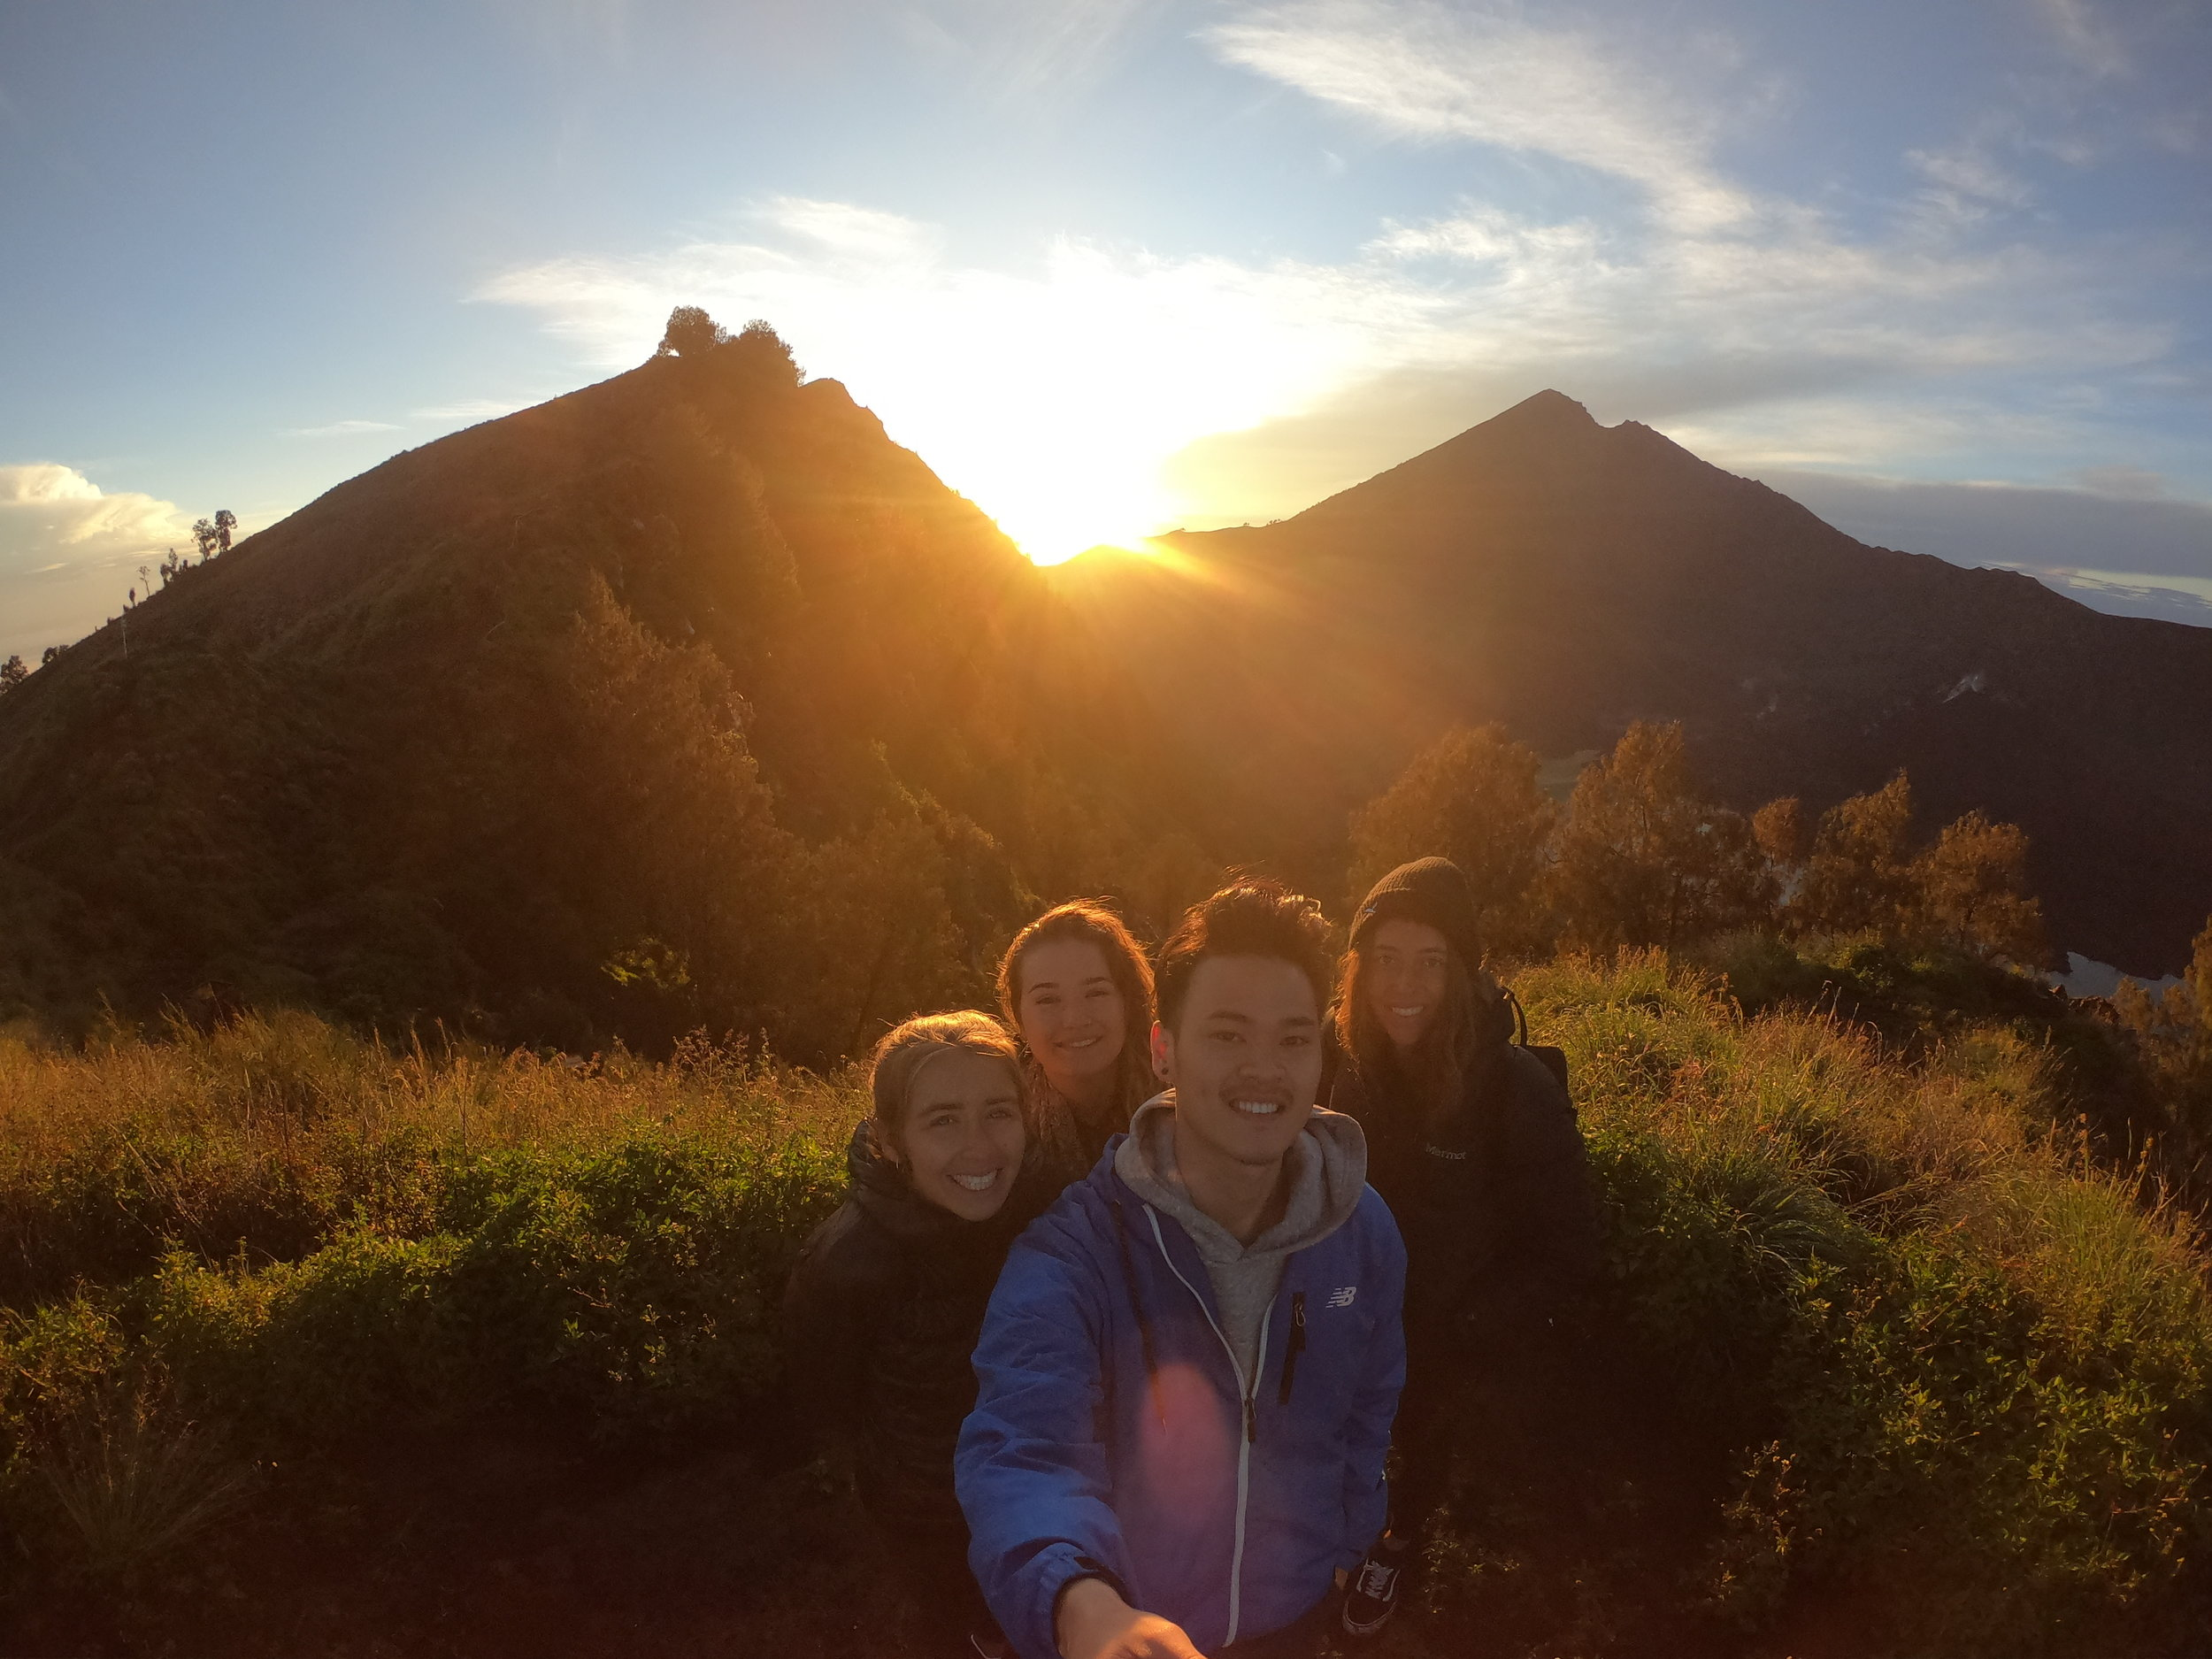 Up early for sunrise with the squad. It was freezing and we basically slept on rocks :(